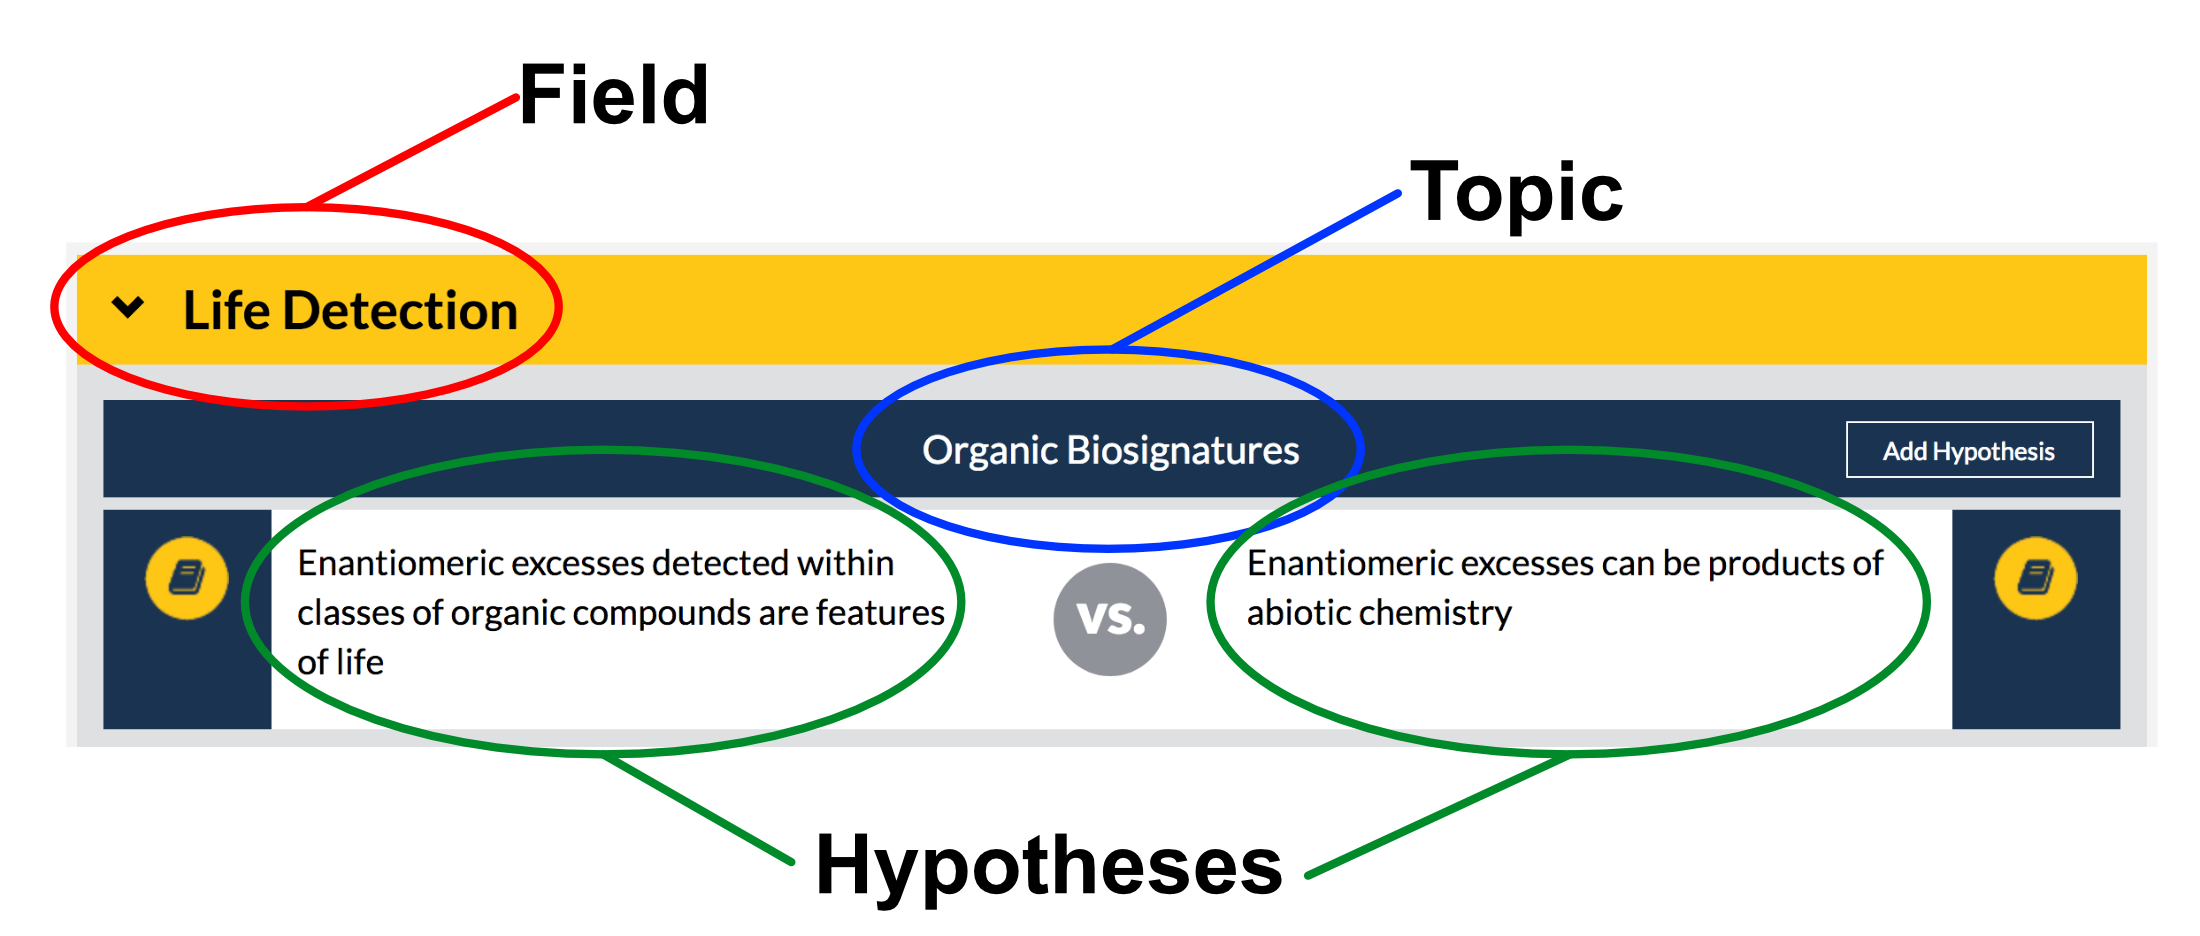 Field Topic Hypothesis